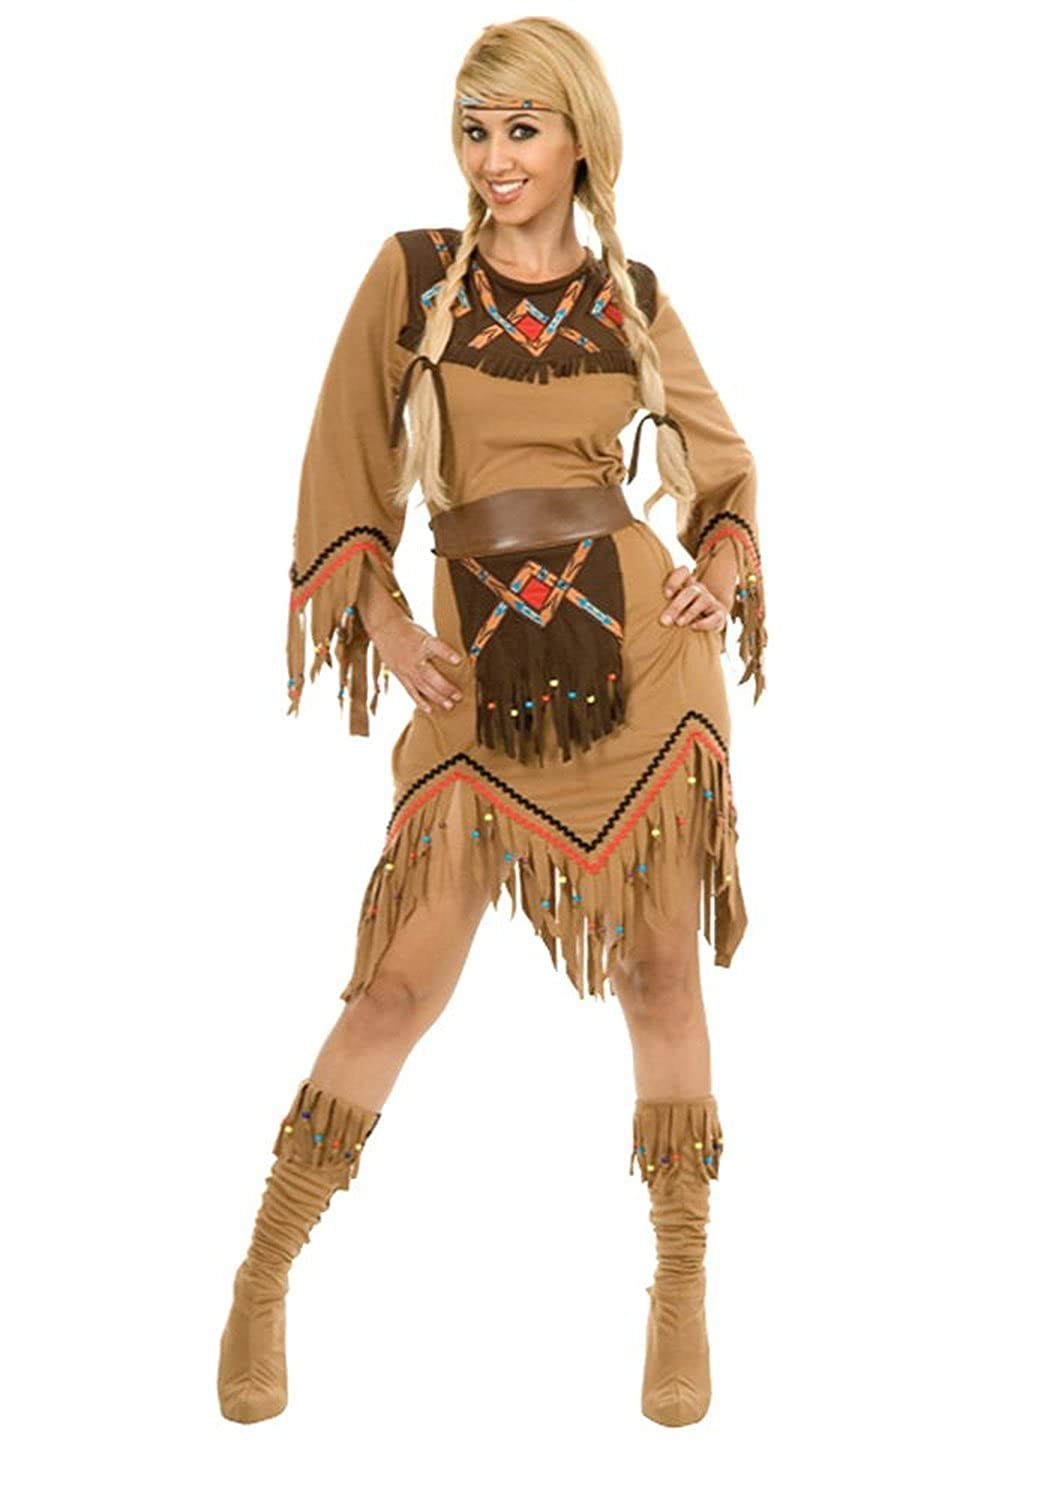 Amazon.com Charades Womenu0027s Sacajawea Indian Maiden Costume Set Clothing  sc 1 st  Amazon.com & Amazon.com: Charades Womenu0027s Sacajawea Indian Maiden Costume Set ...